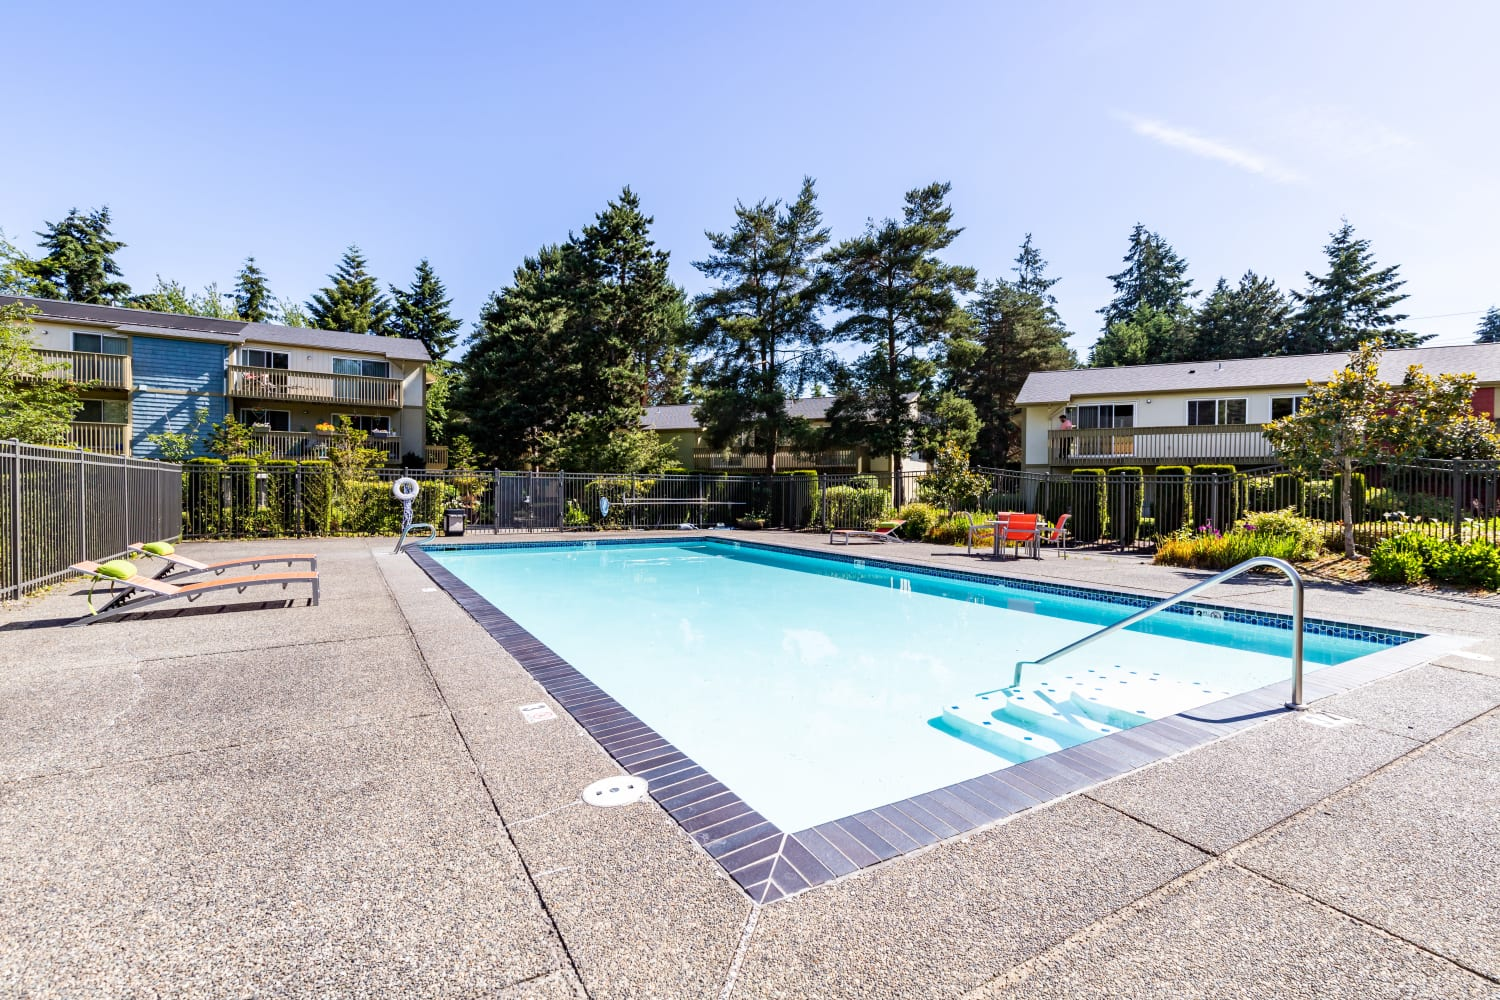 Swimming Pool at Apartments in Bellevue, Washington